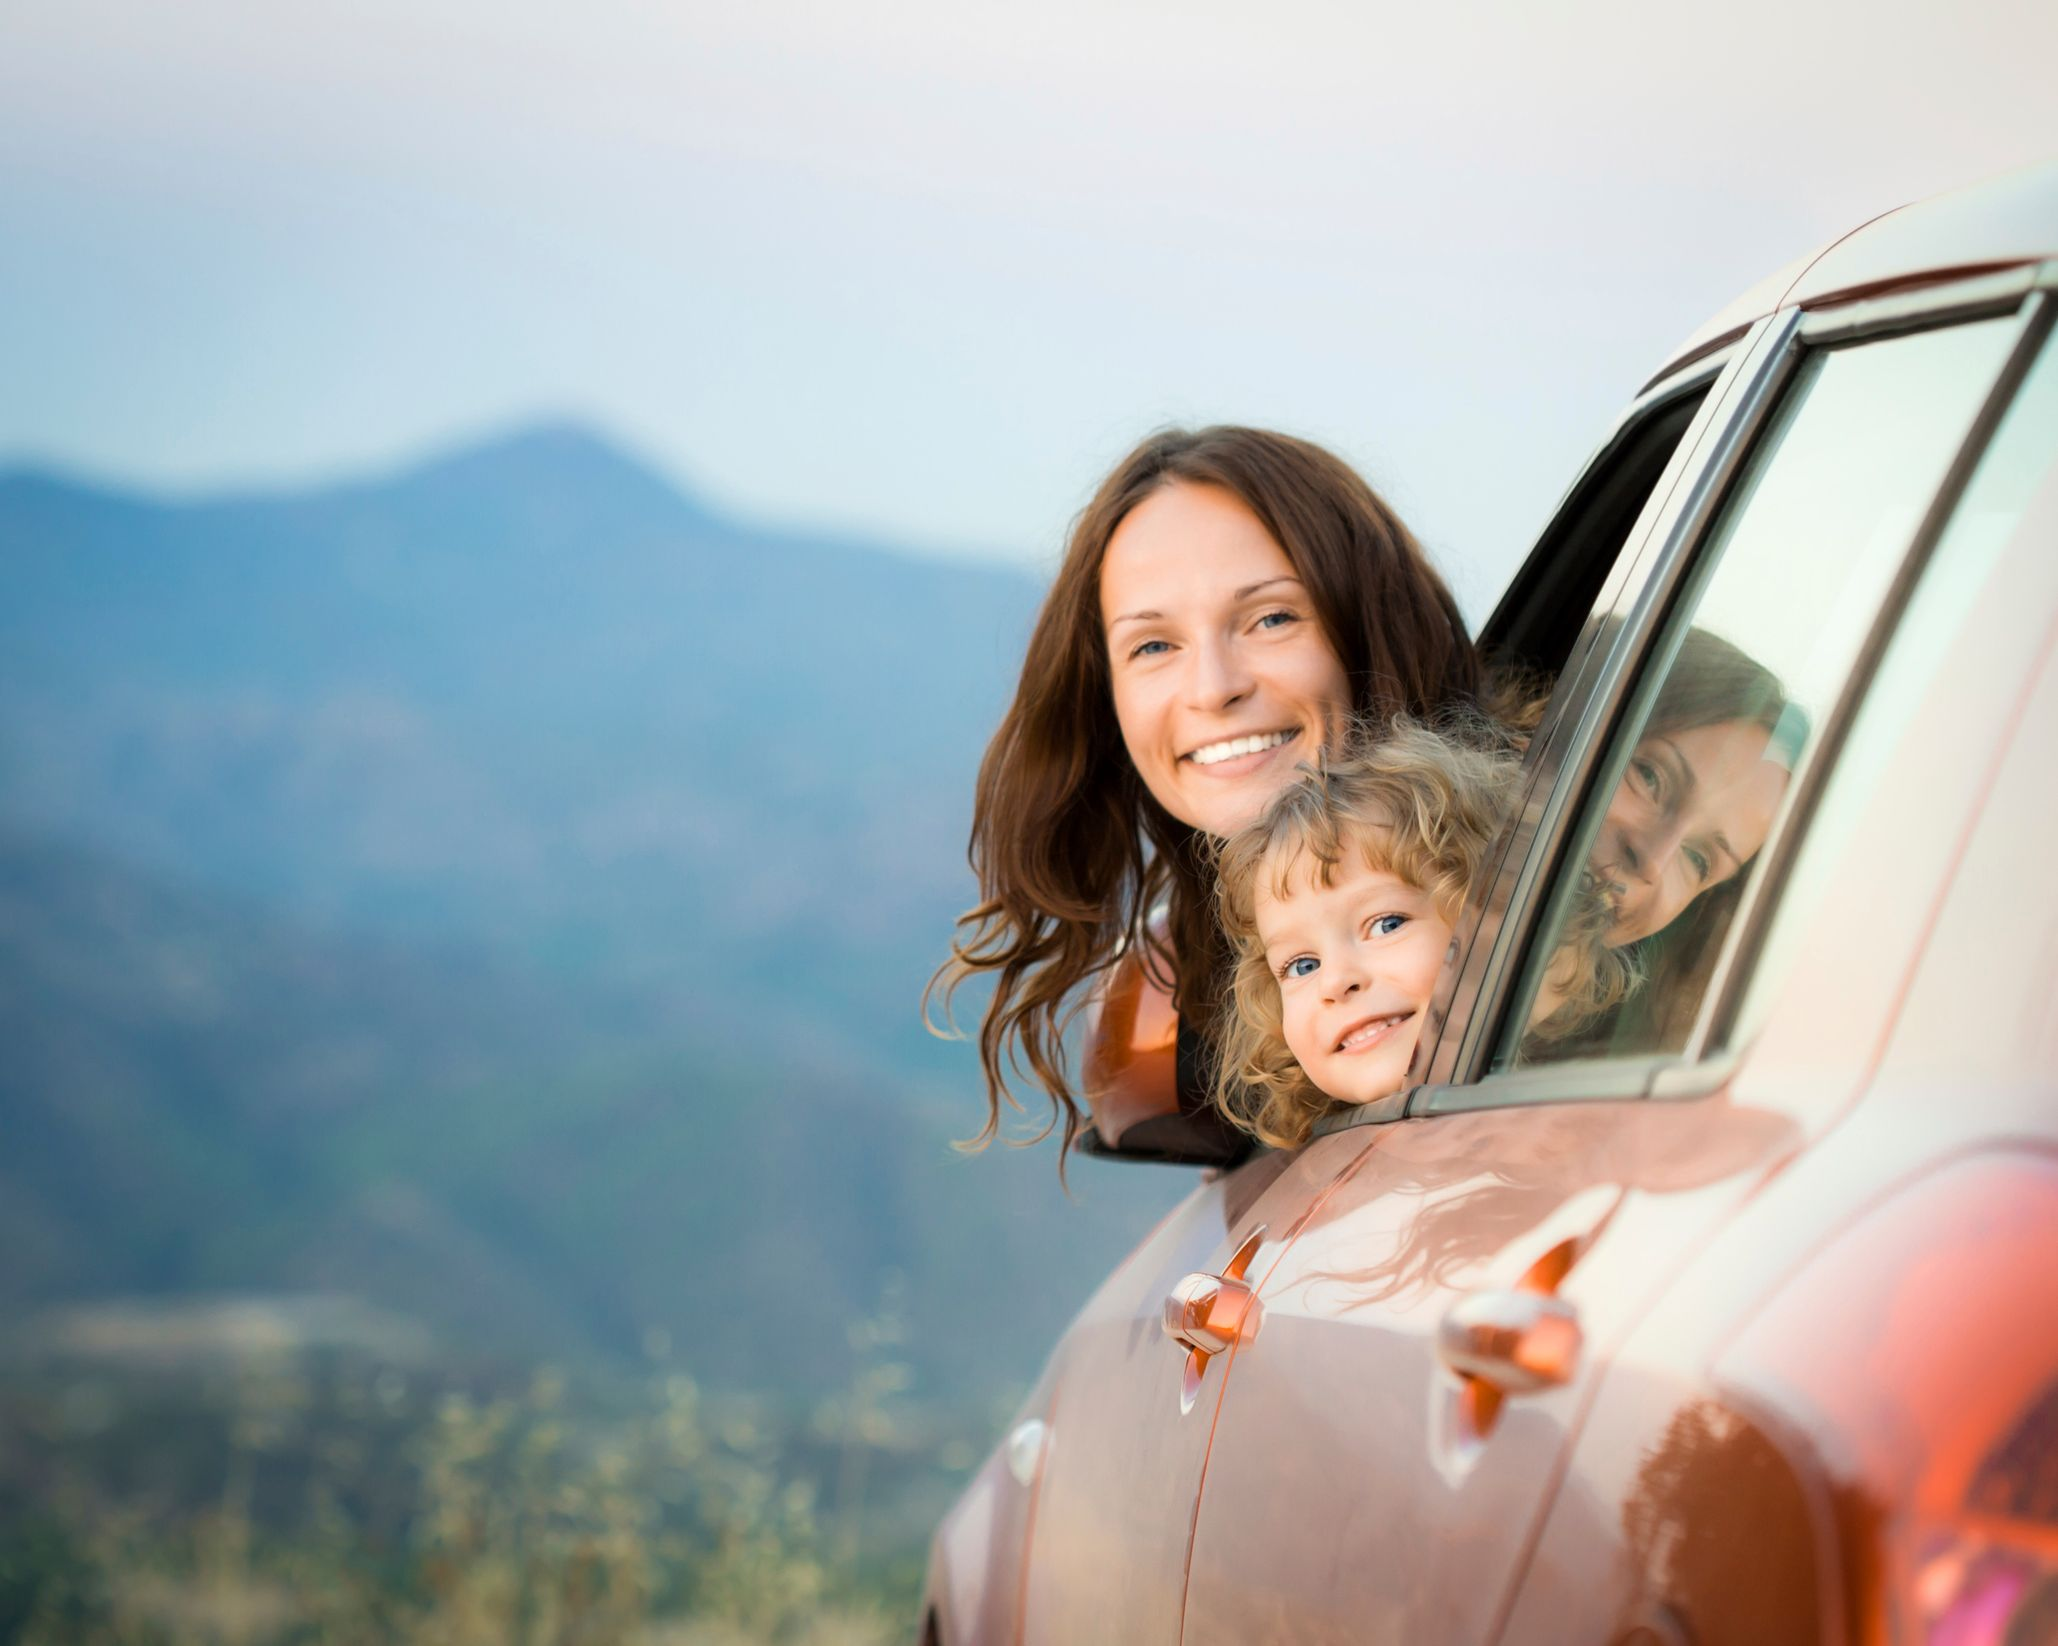 Mother and daughter popping their heads out of a car window